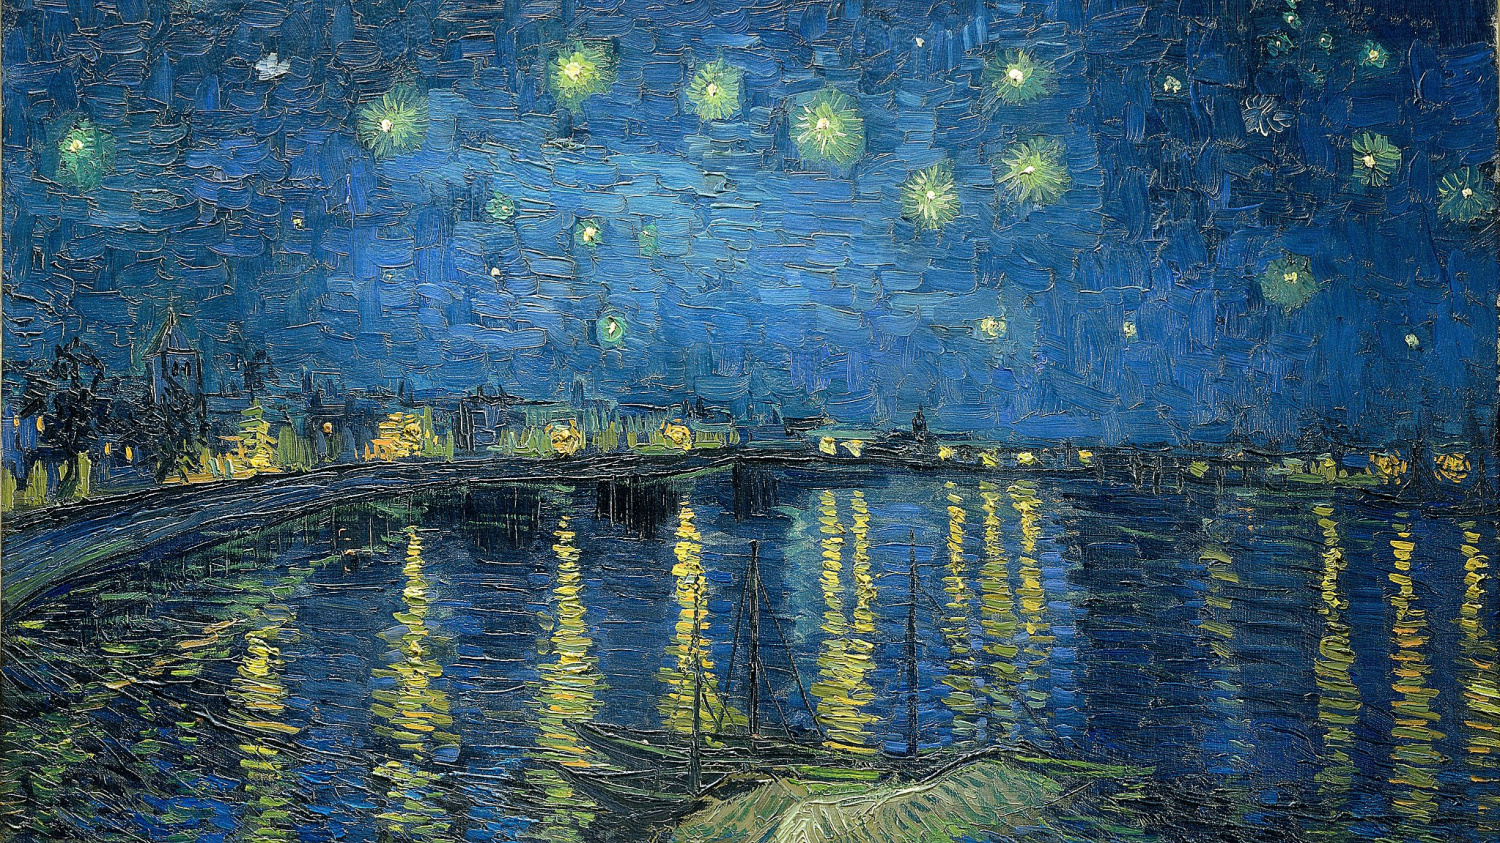 """Detail of Vincent Van Gogh's Starry Night Over the Rhone,"""" a painting of the stars in an evening sky and gas lights along the river bank reflected in the deep blue water"""